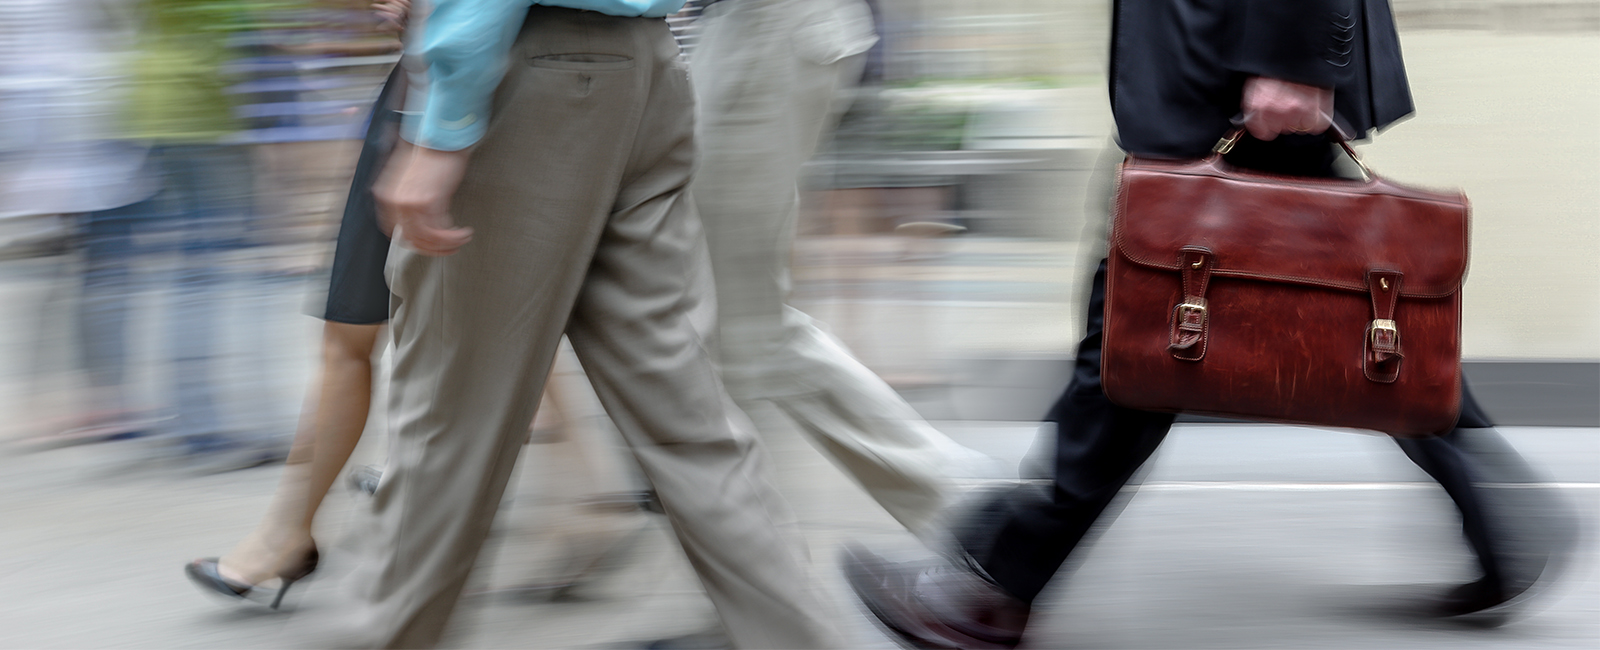 executives walking quickly waist and lower leg view